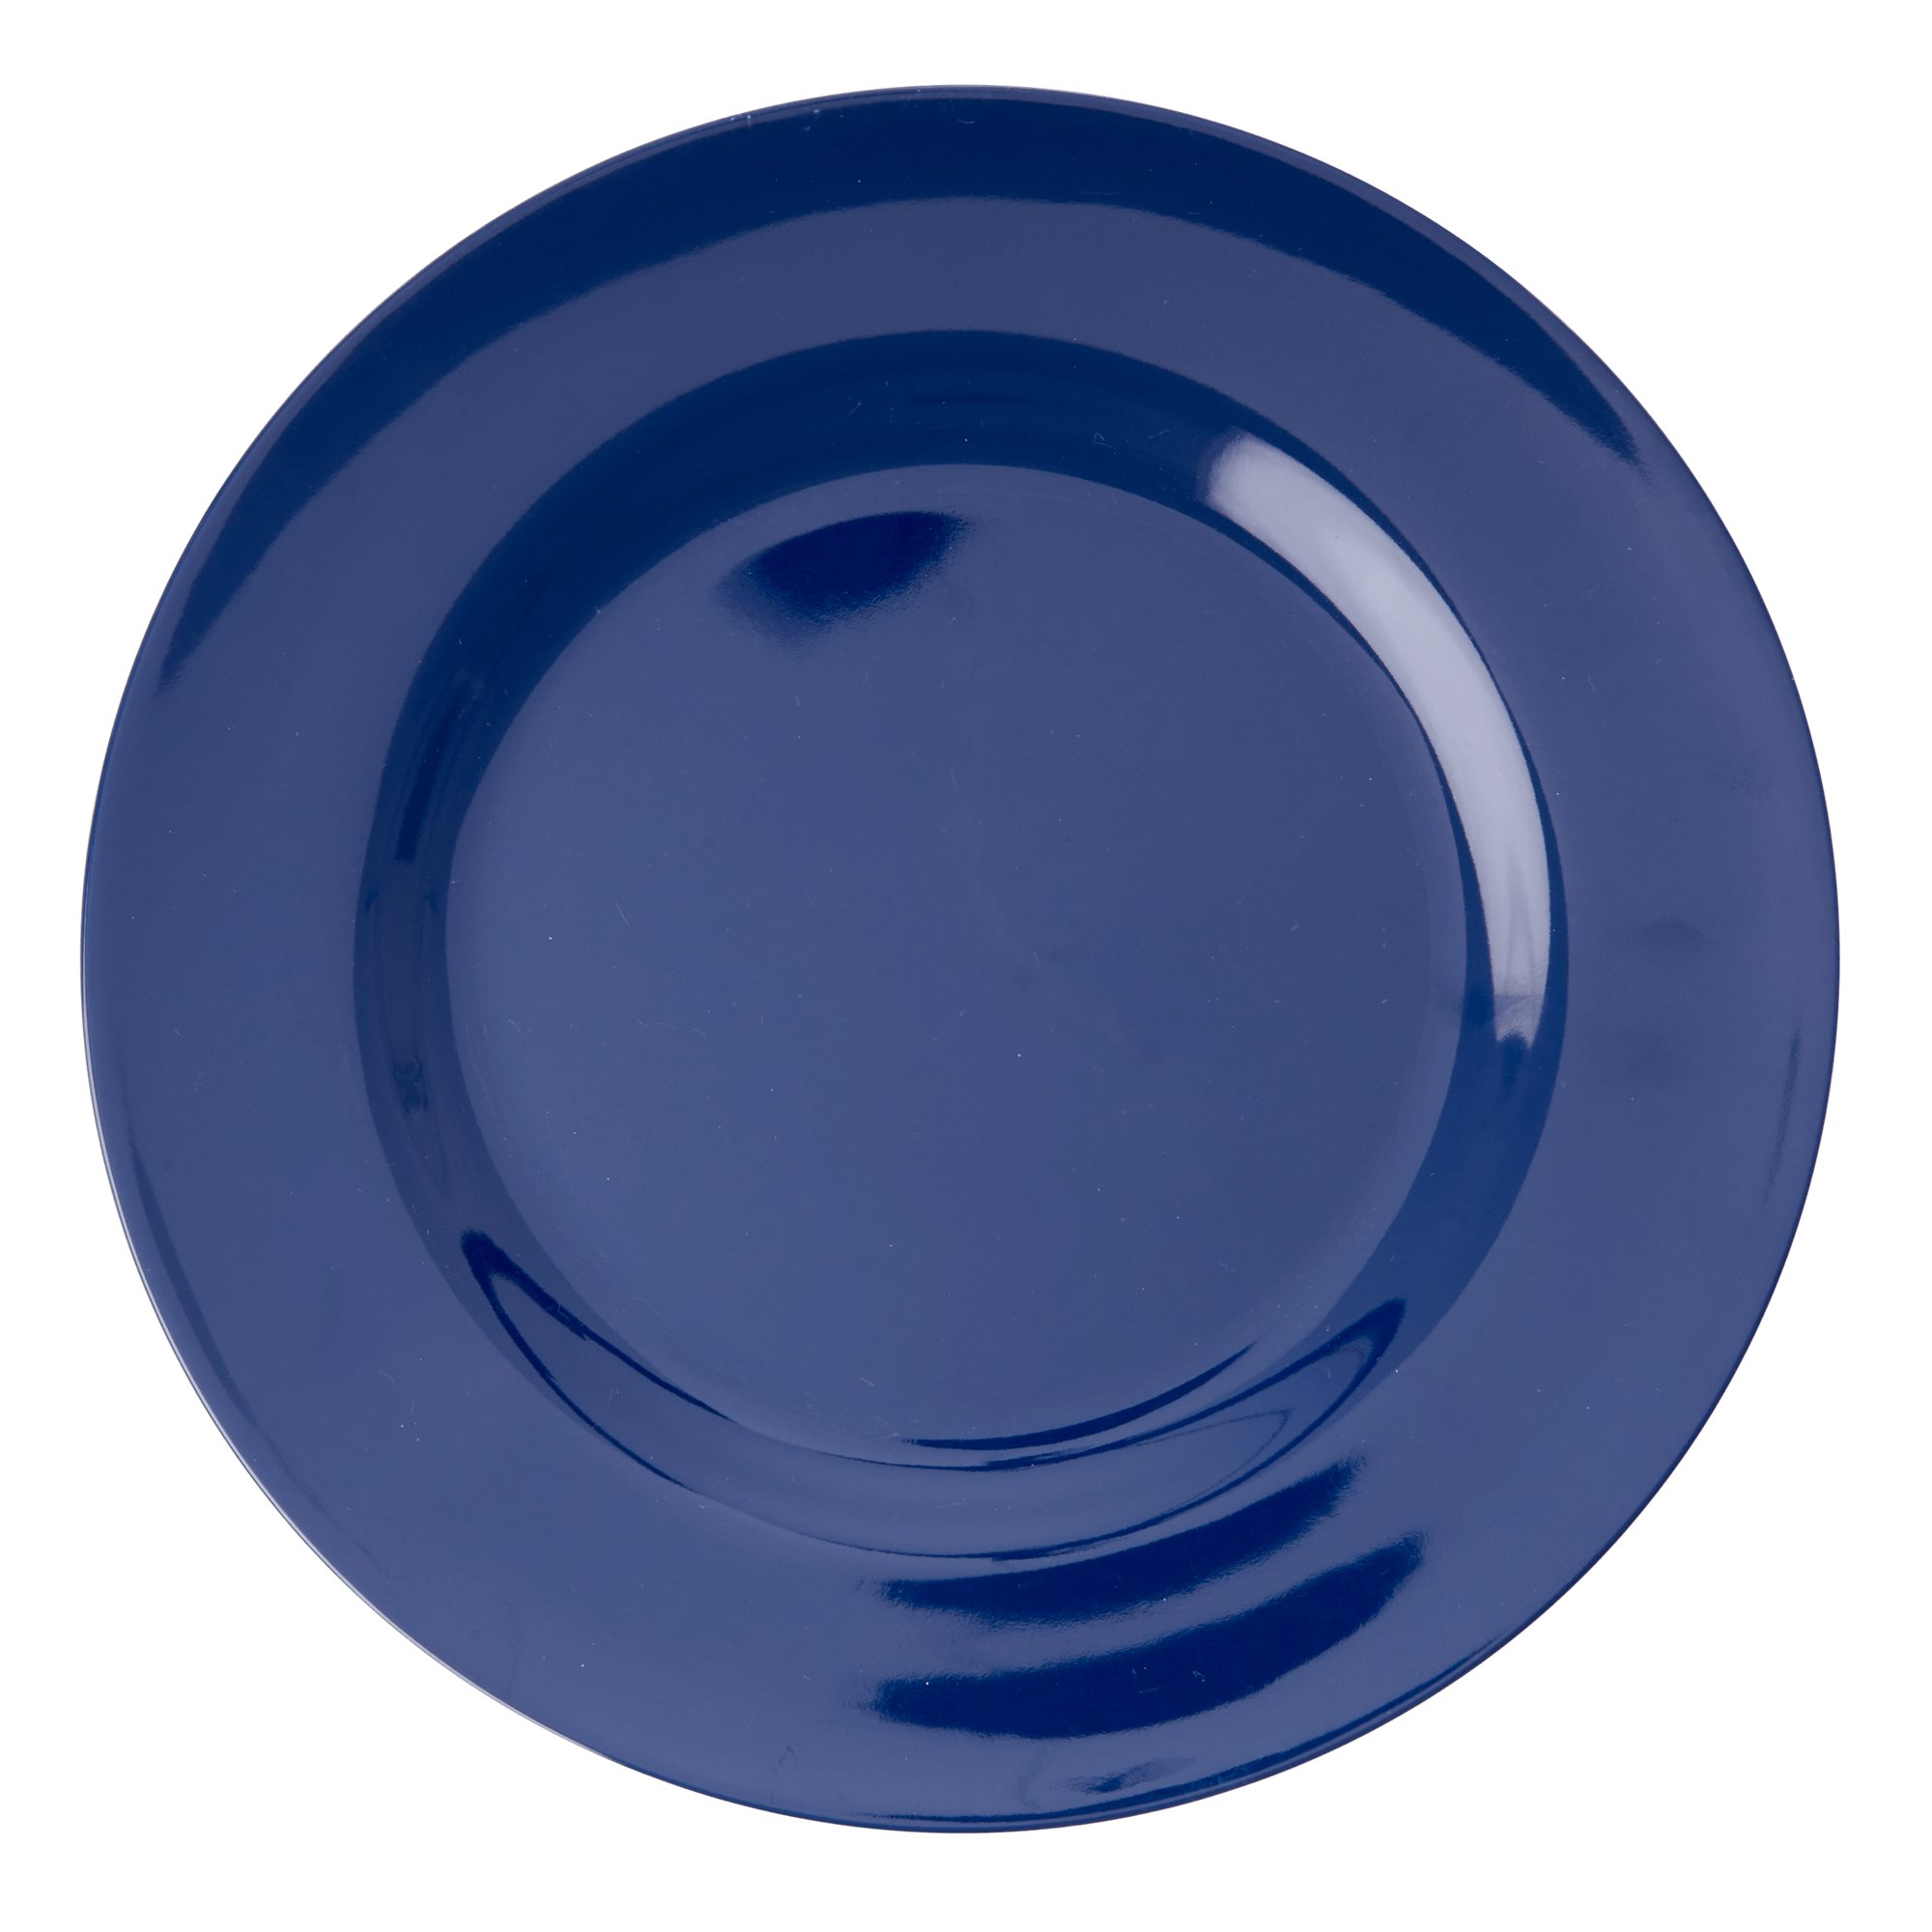 Melamine Solid colored Dinner plate in Navy Blue